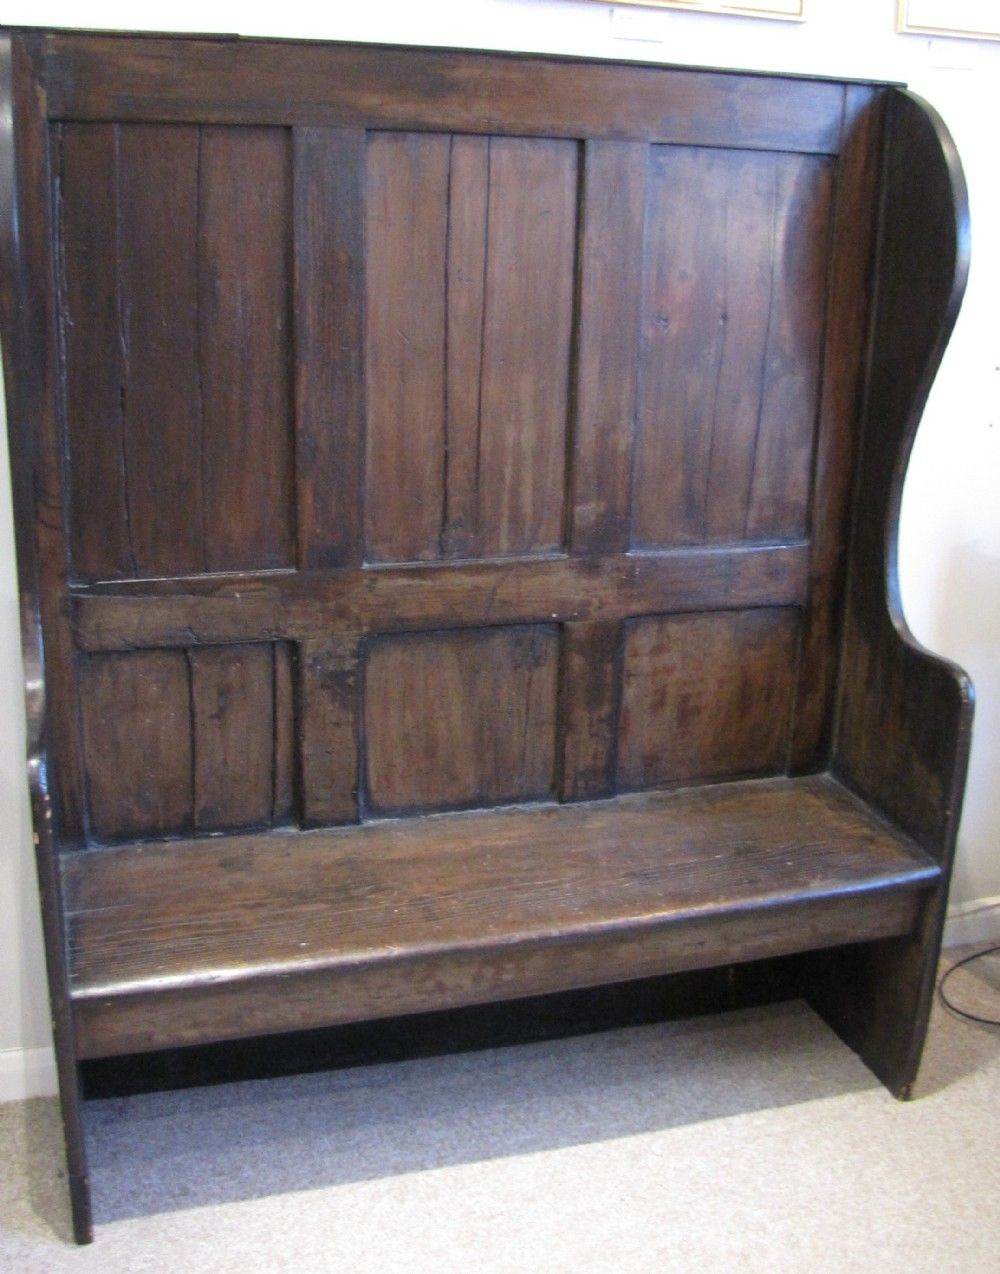 Antique Reproduction Furniture Uk Lovely 19th Century Antique Settle